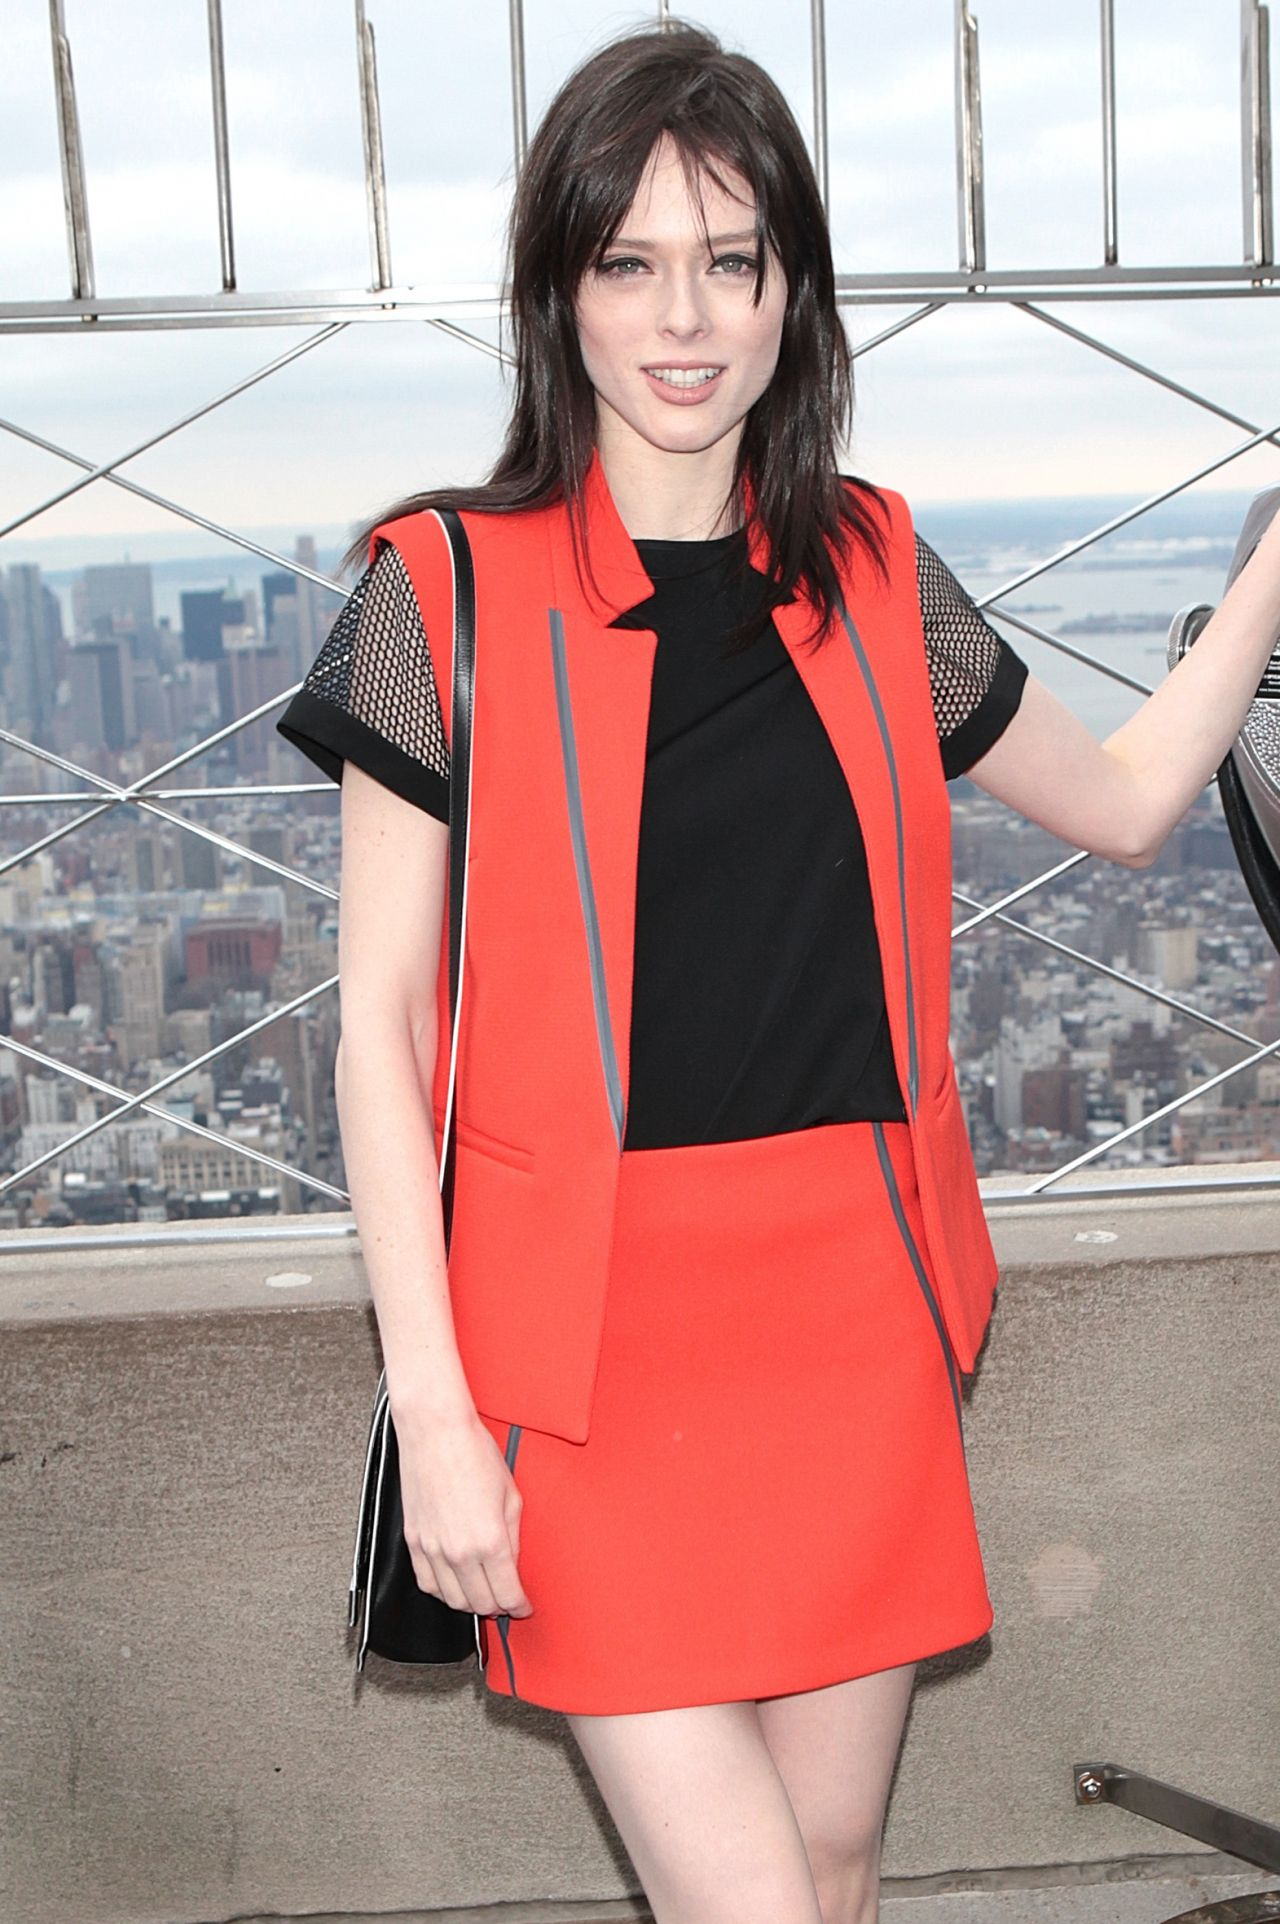 coco-rocha-empire-state-building-2-17-2016-1